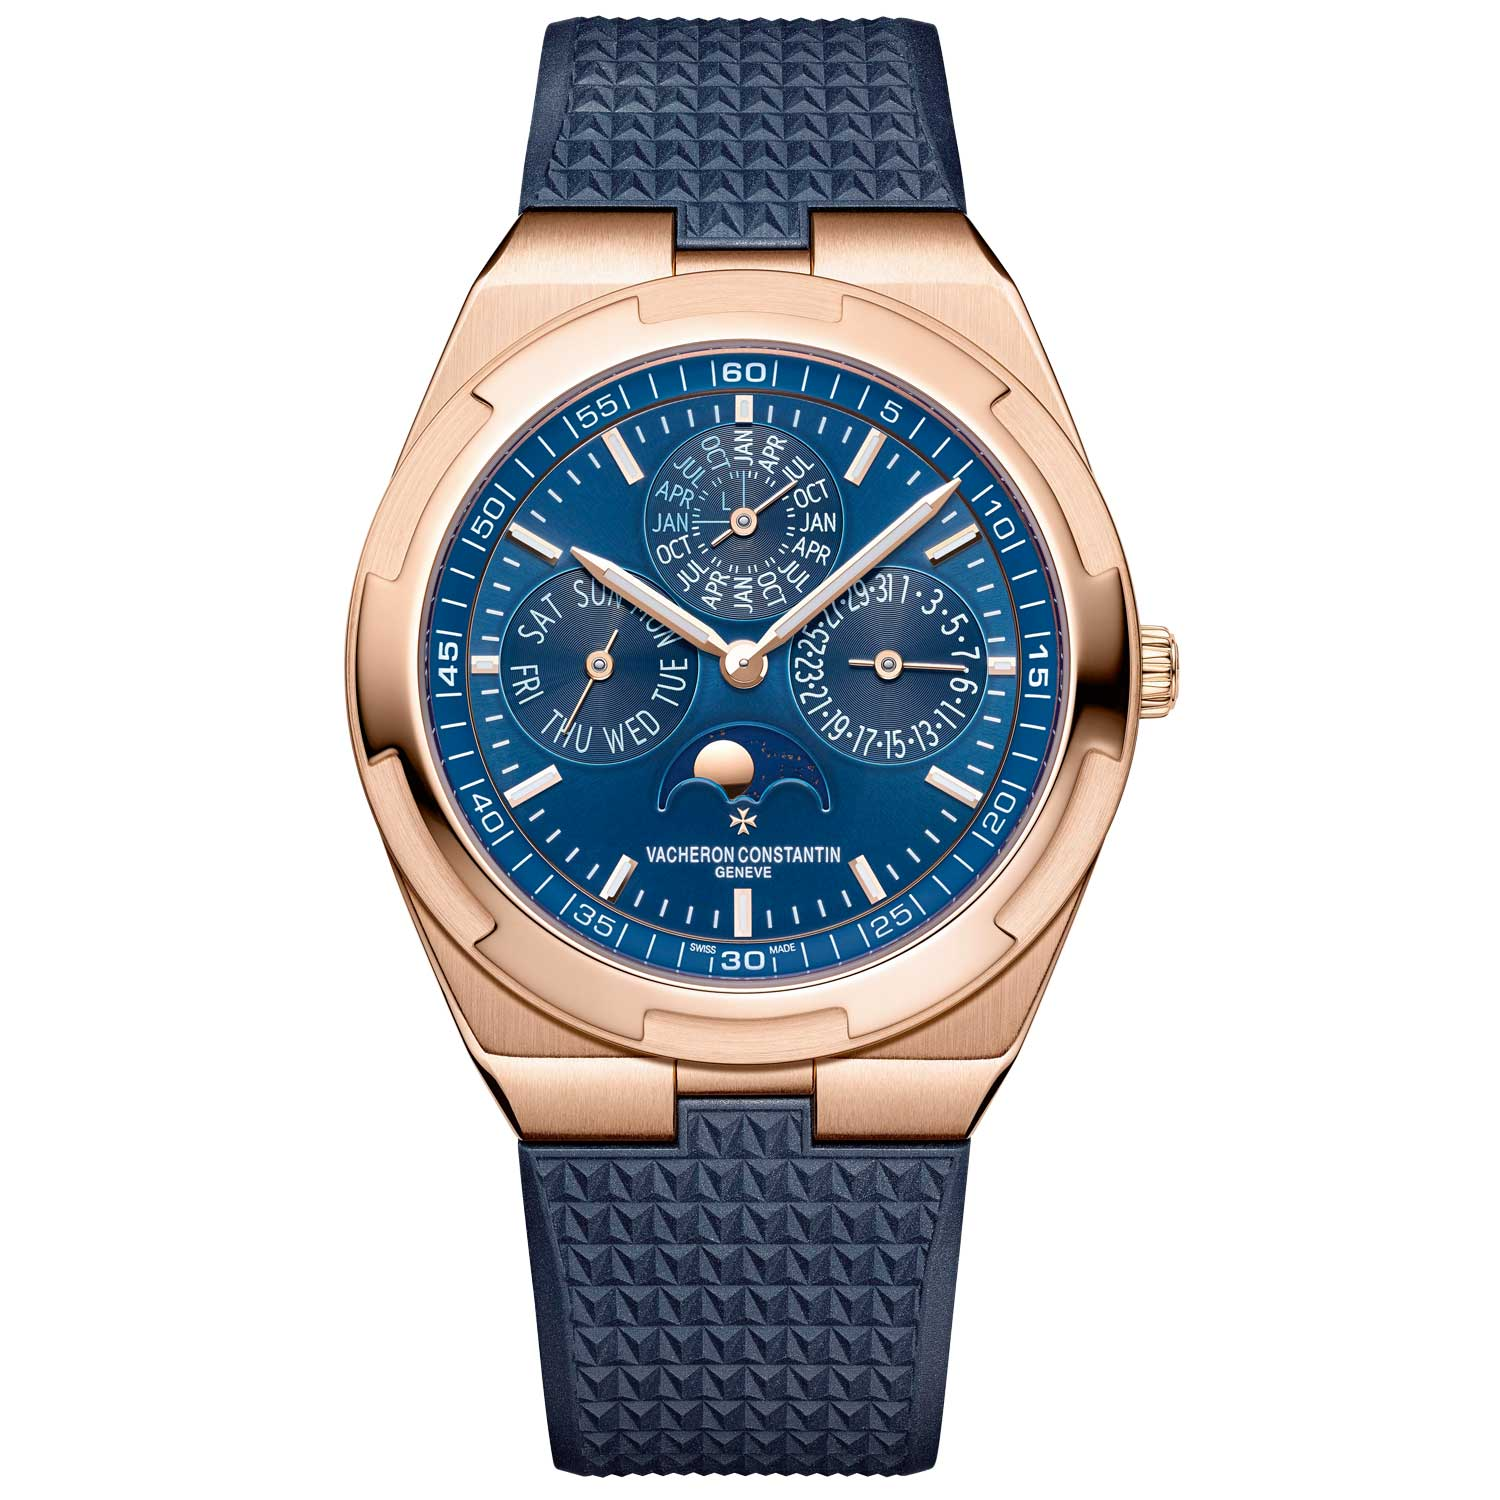 The blue dial version with rubber strap that was released in 2019